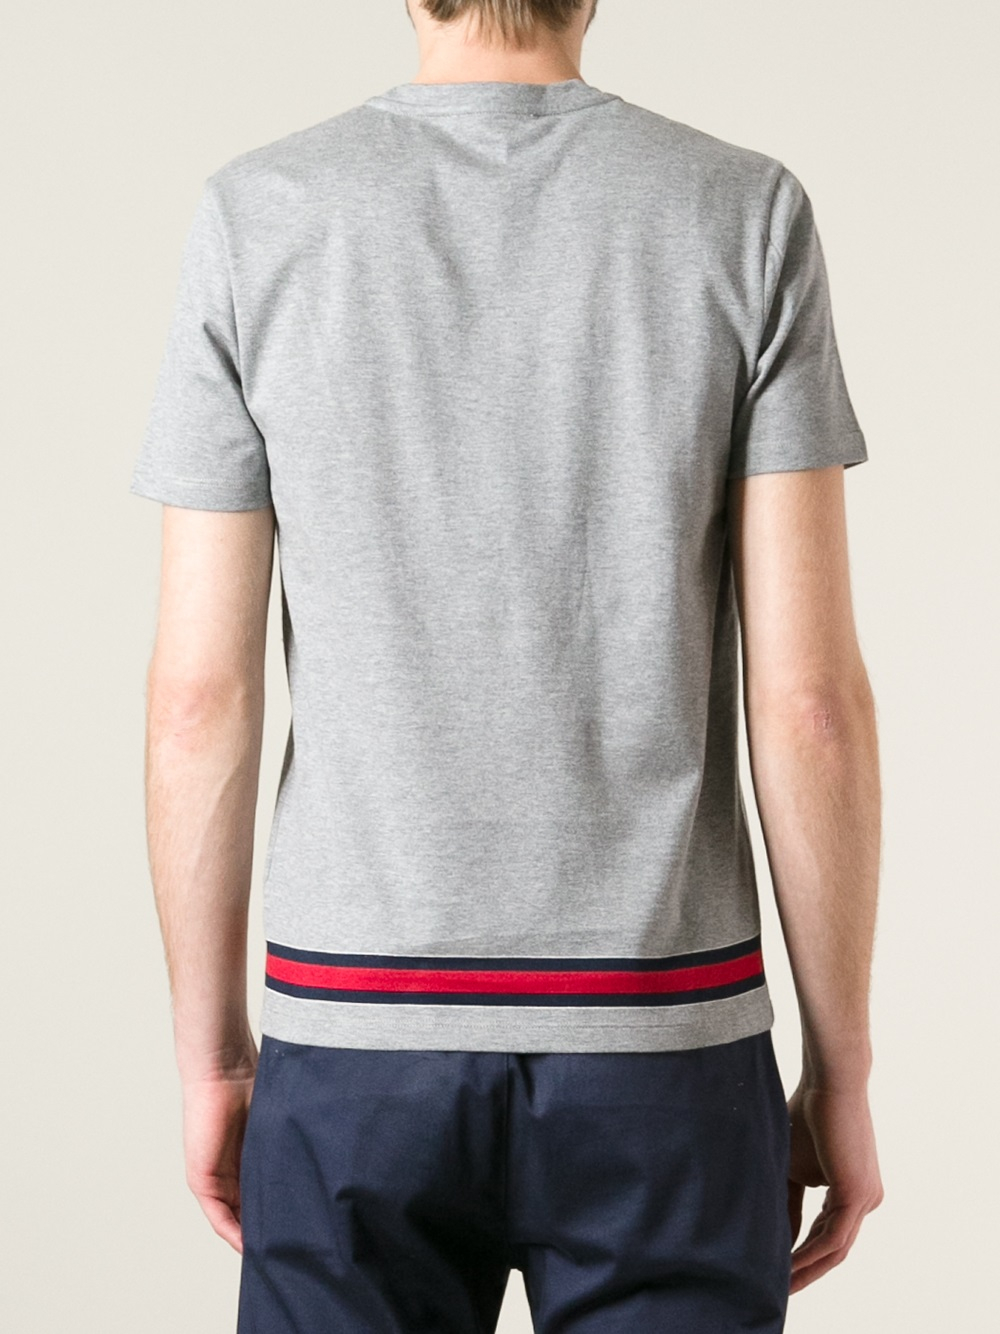 lyst gucci classic tshirt in gray for men. Black Bedroom Furniture Sets. Home Design Ideas